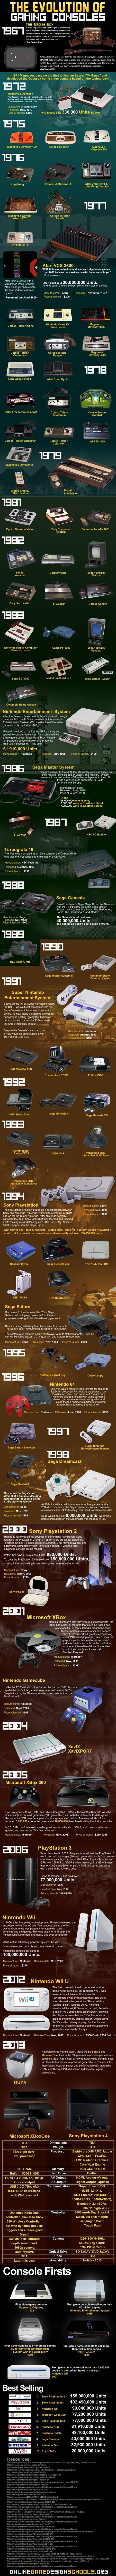 Evolution of Gaming Infographic